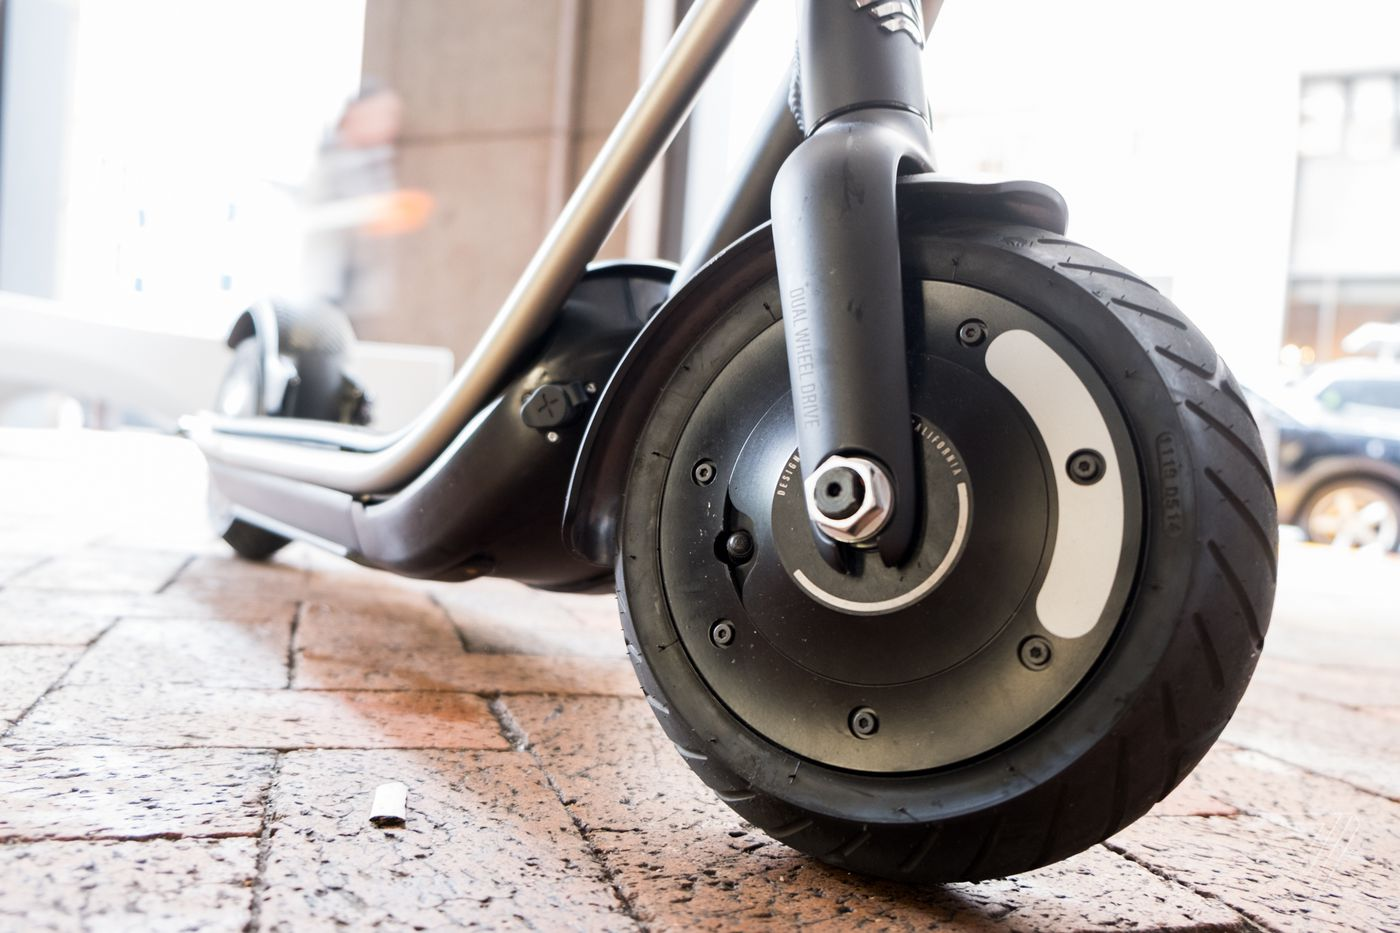 Boosted's first electric scooter is a $1,599 vehicle built